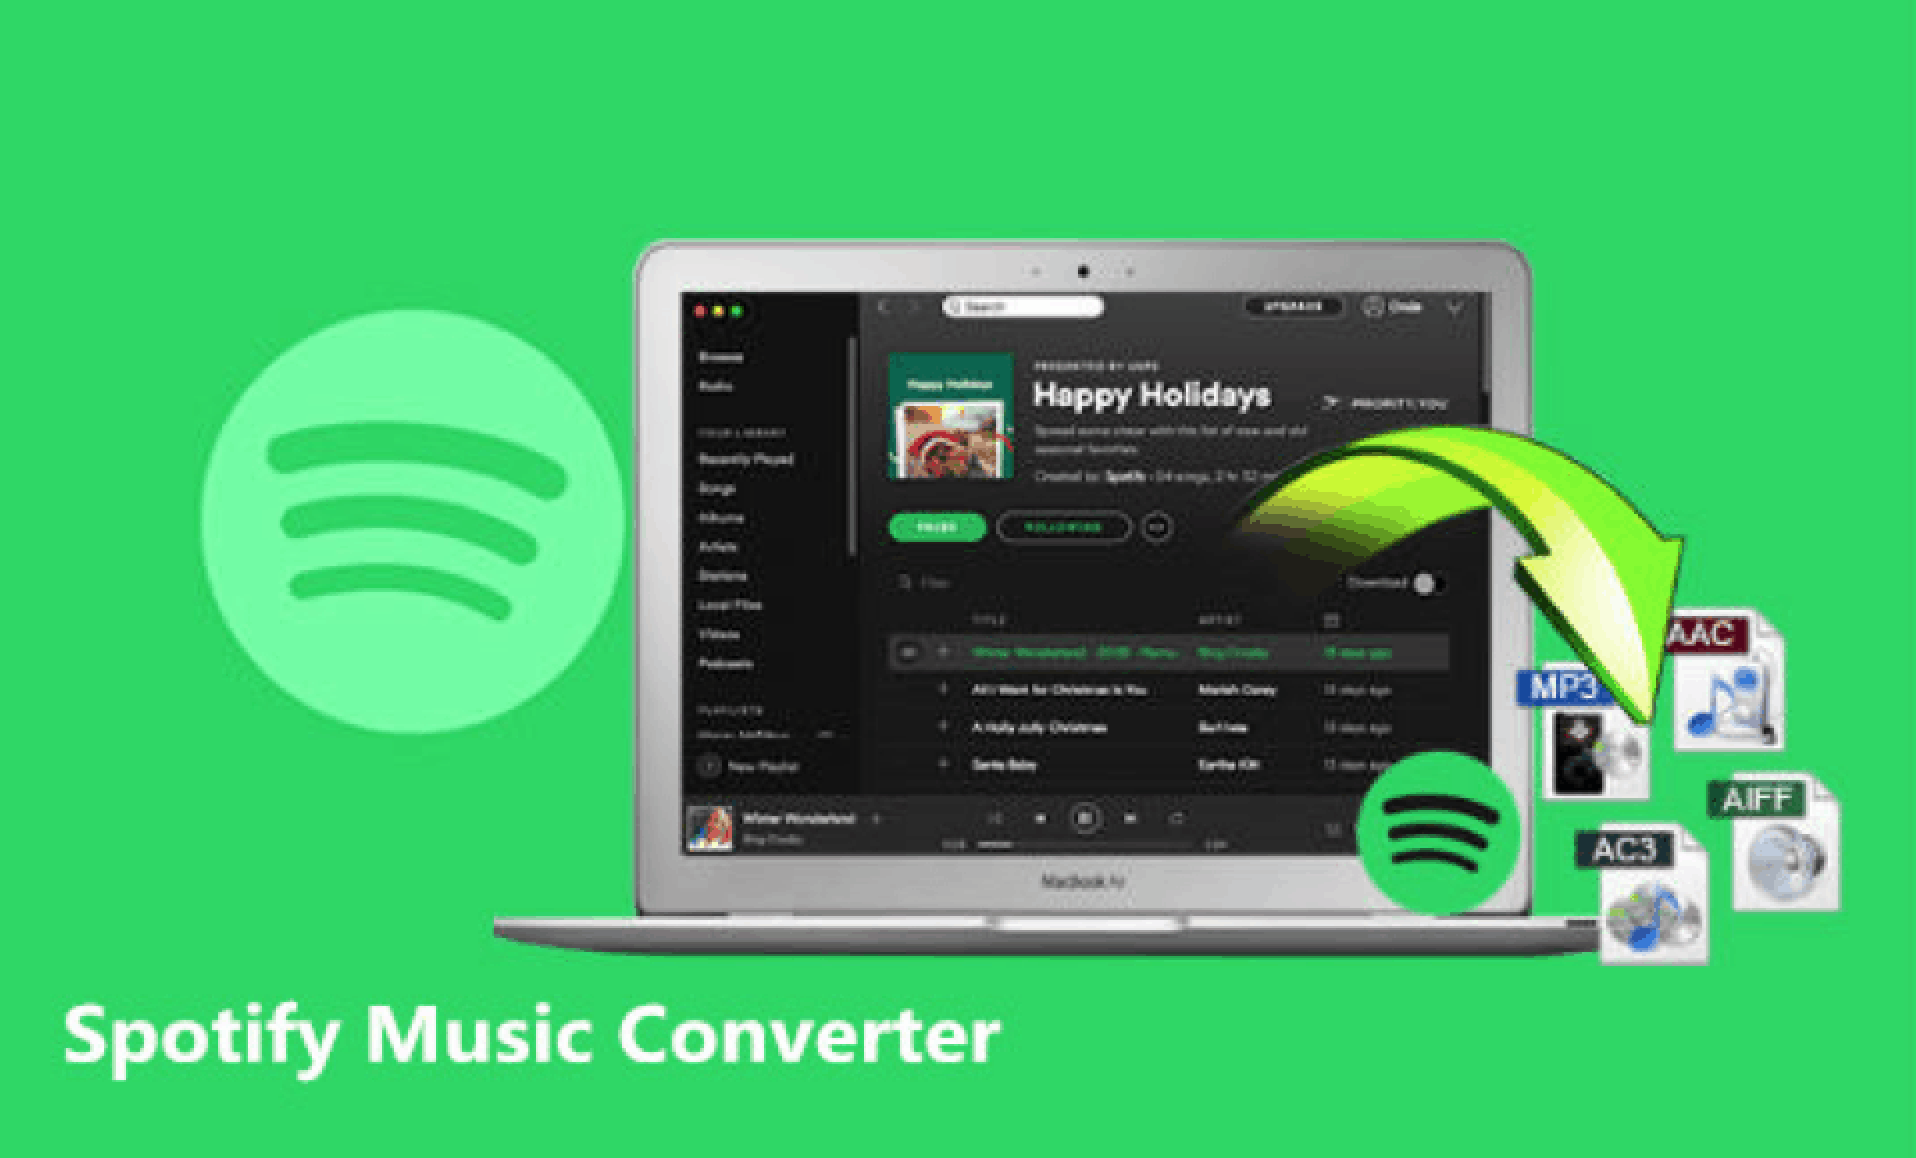 5 Spotify Downloader Online Convert Music to mp3, flac, m4a